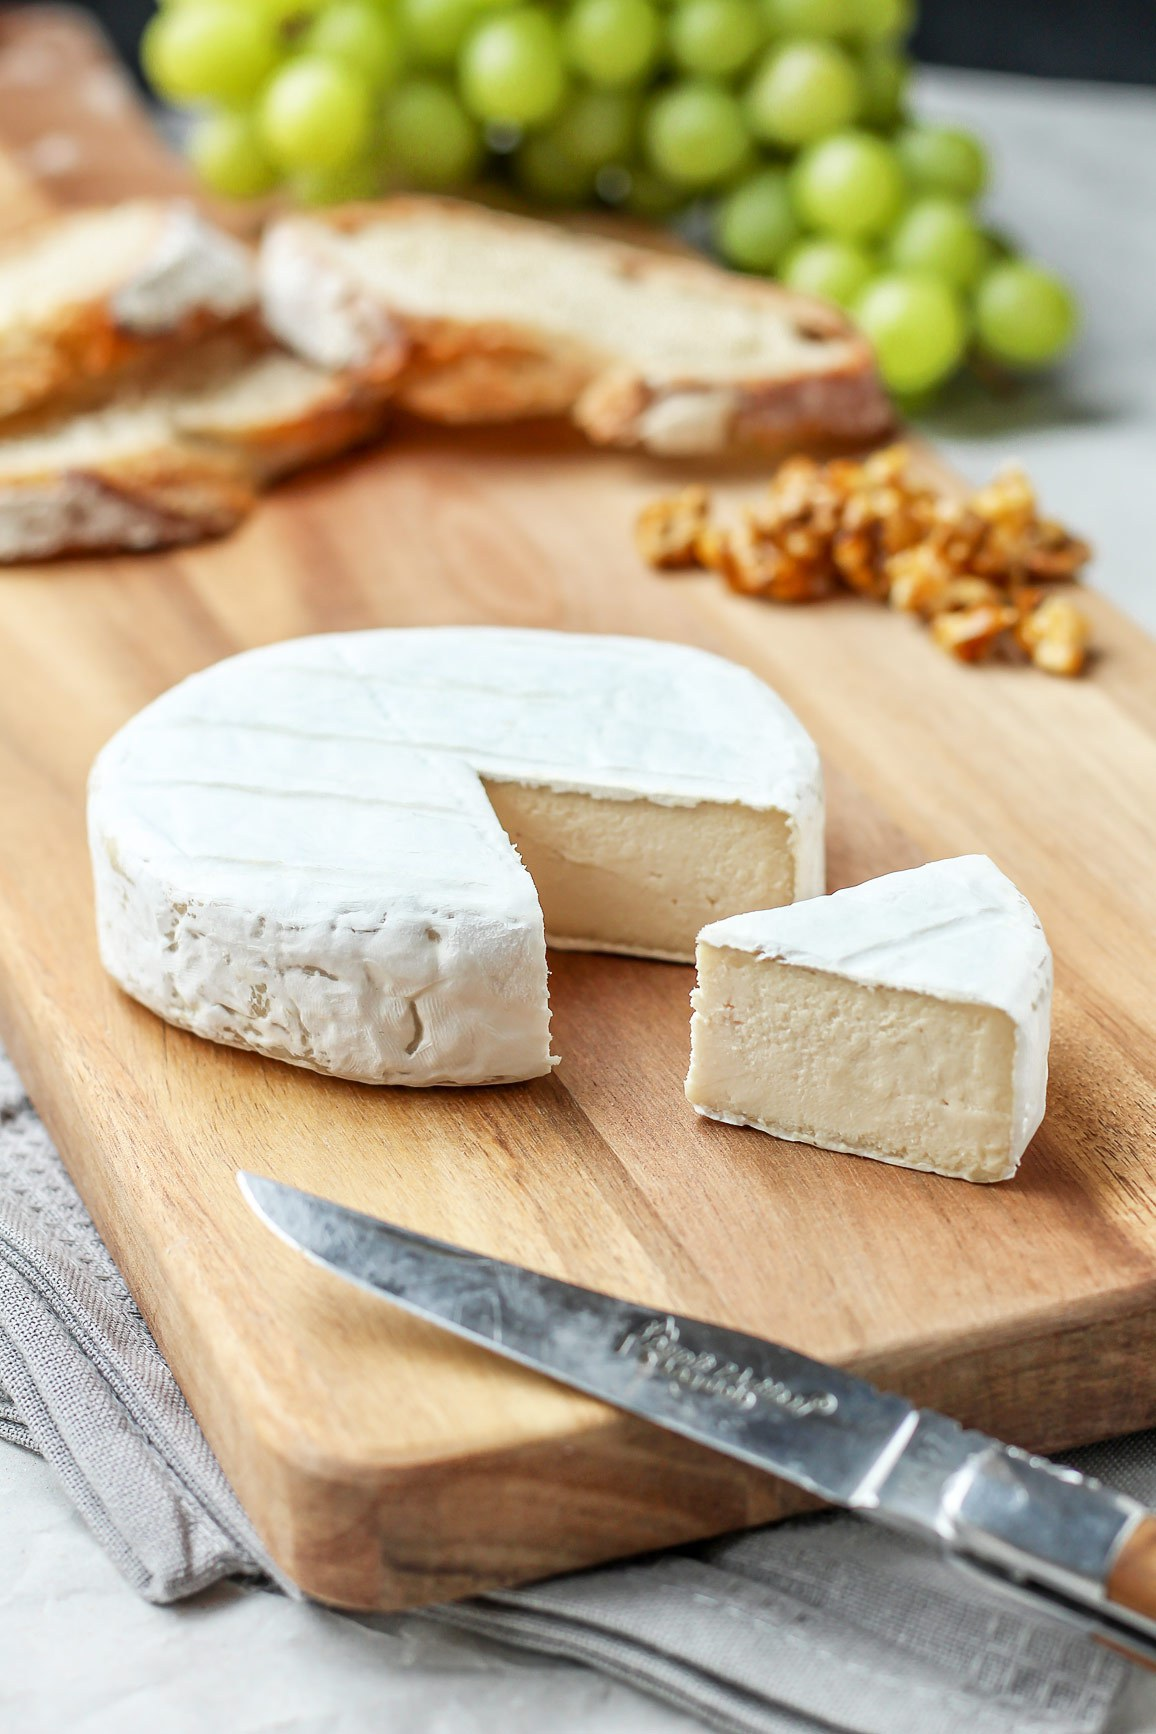 vegan-aged-camembert-cheese-15